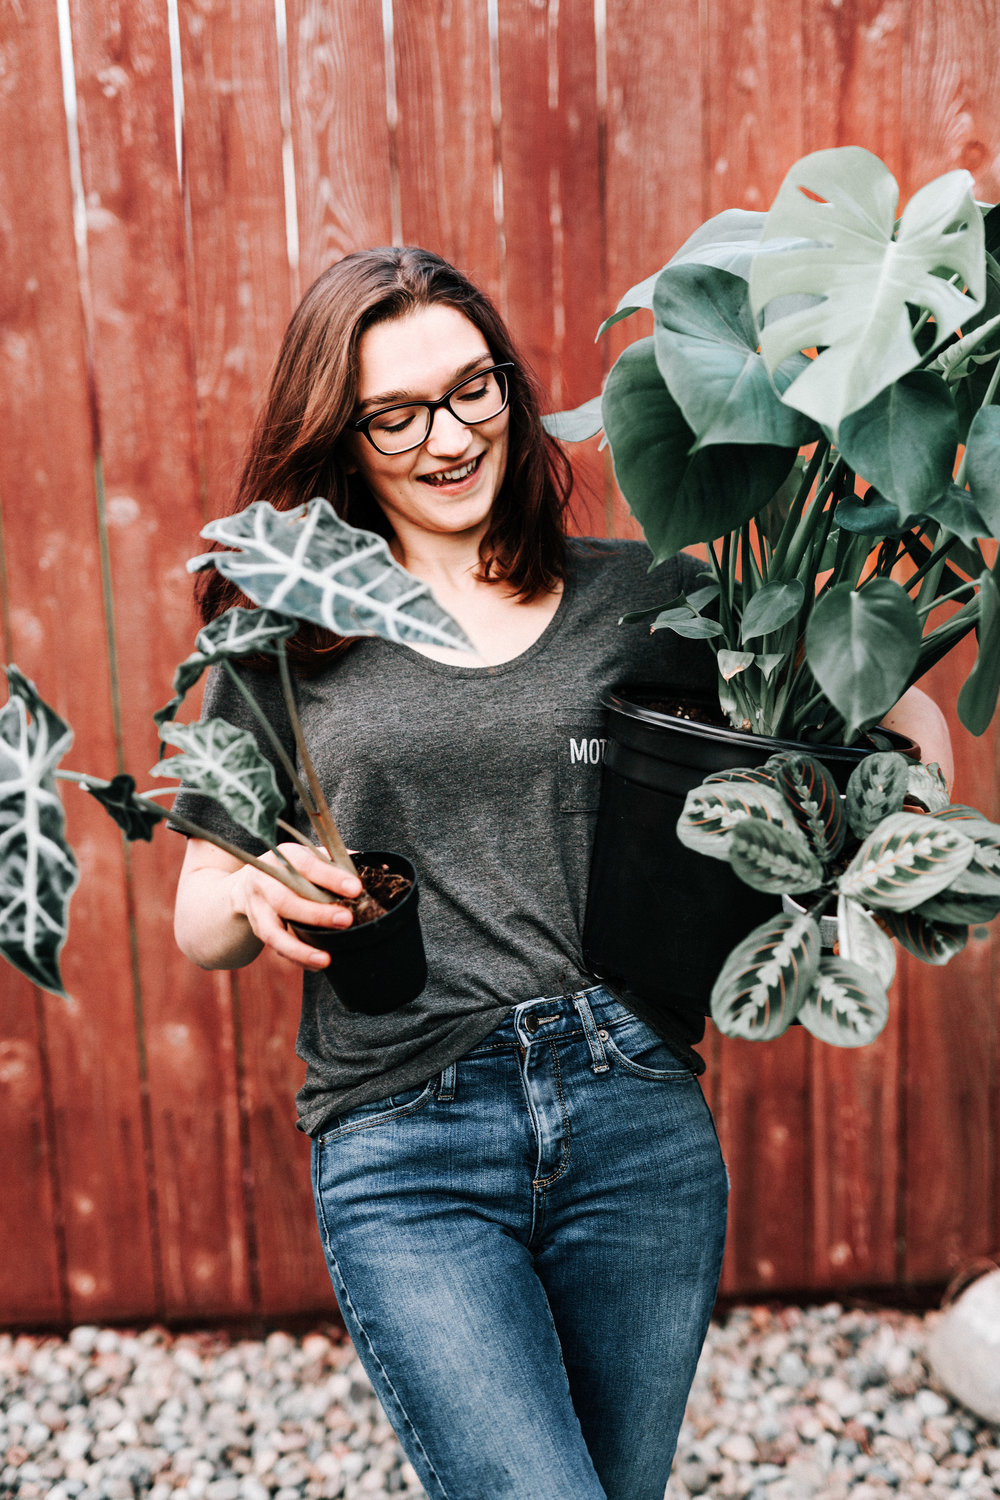 Dusty Hegge: Houseplant Educator and Business Strategist